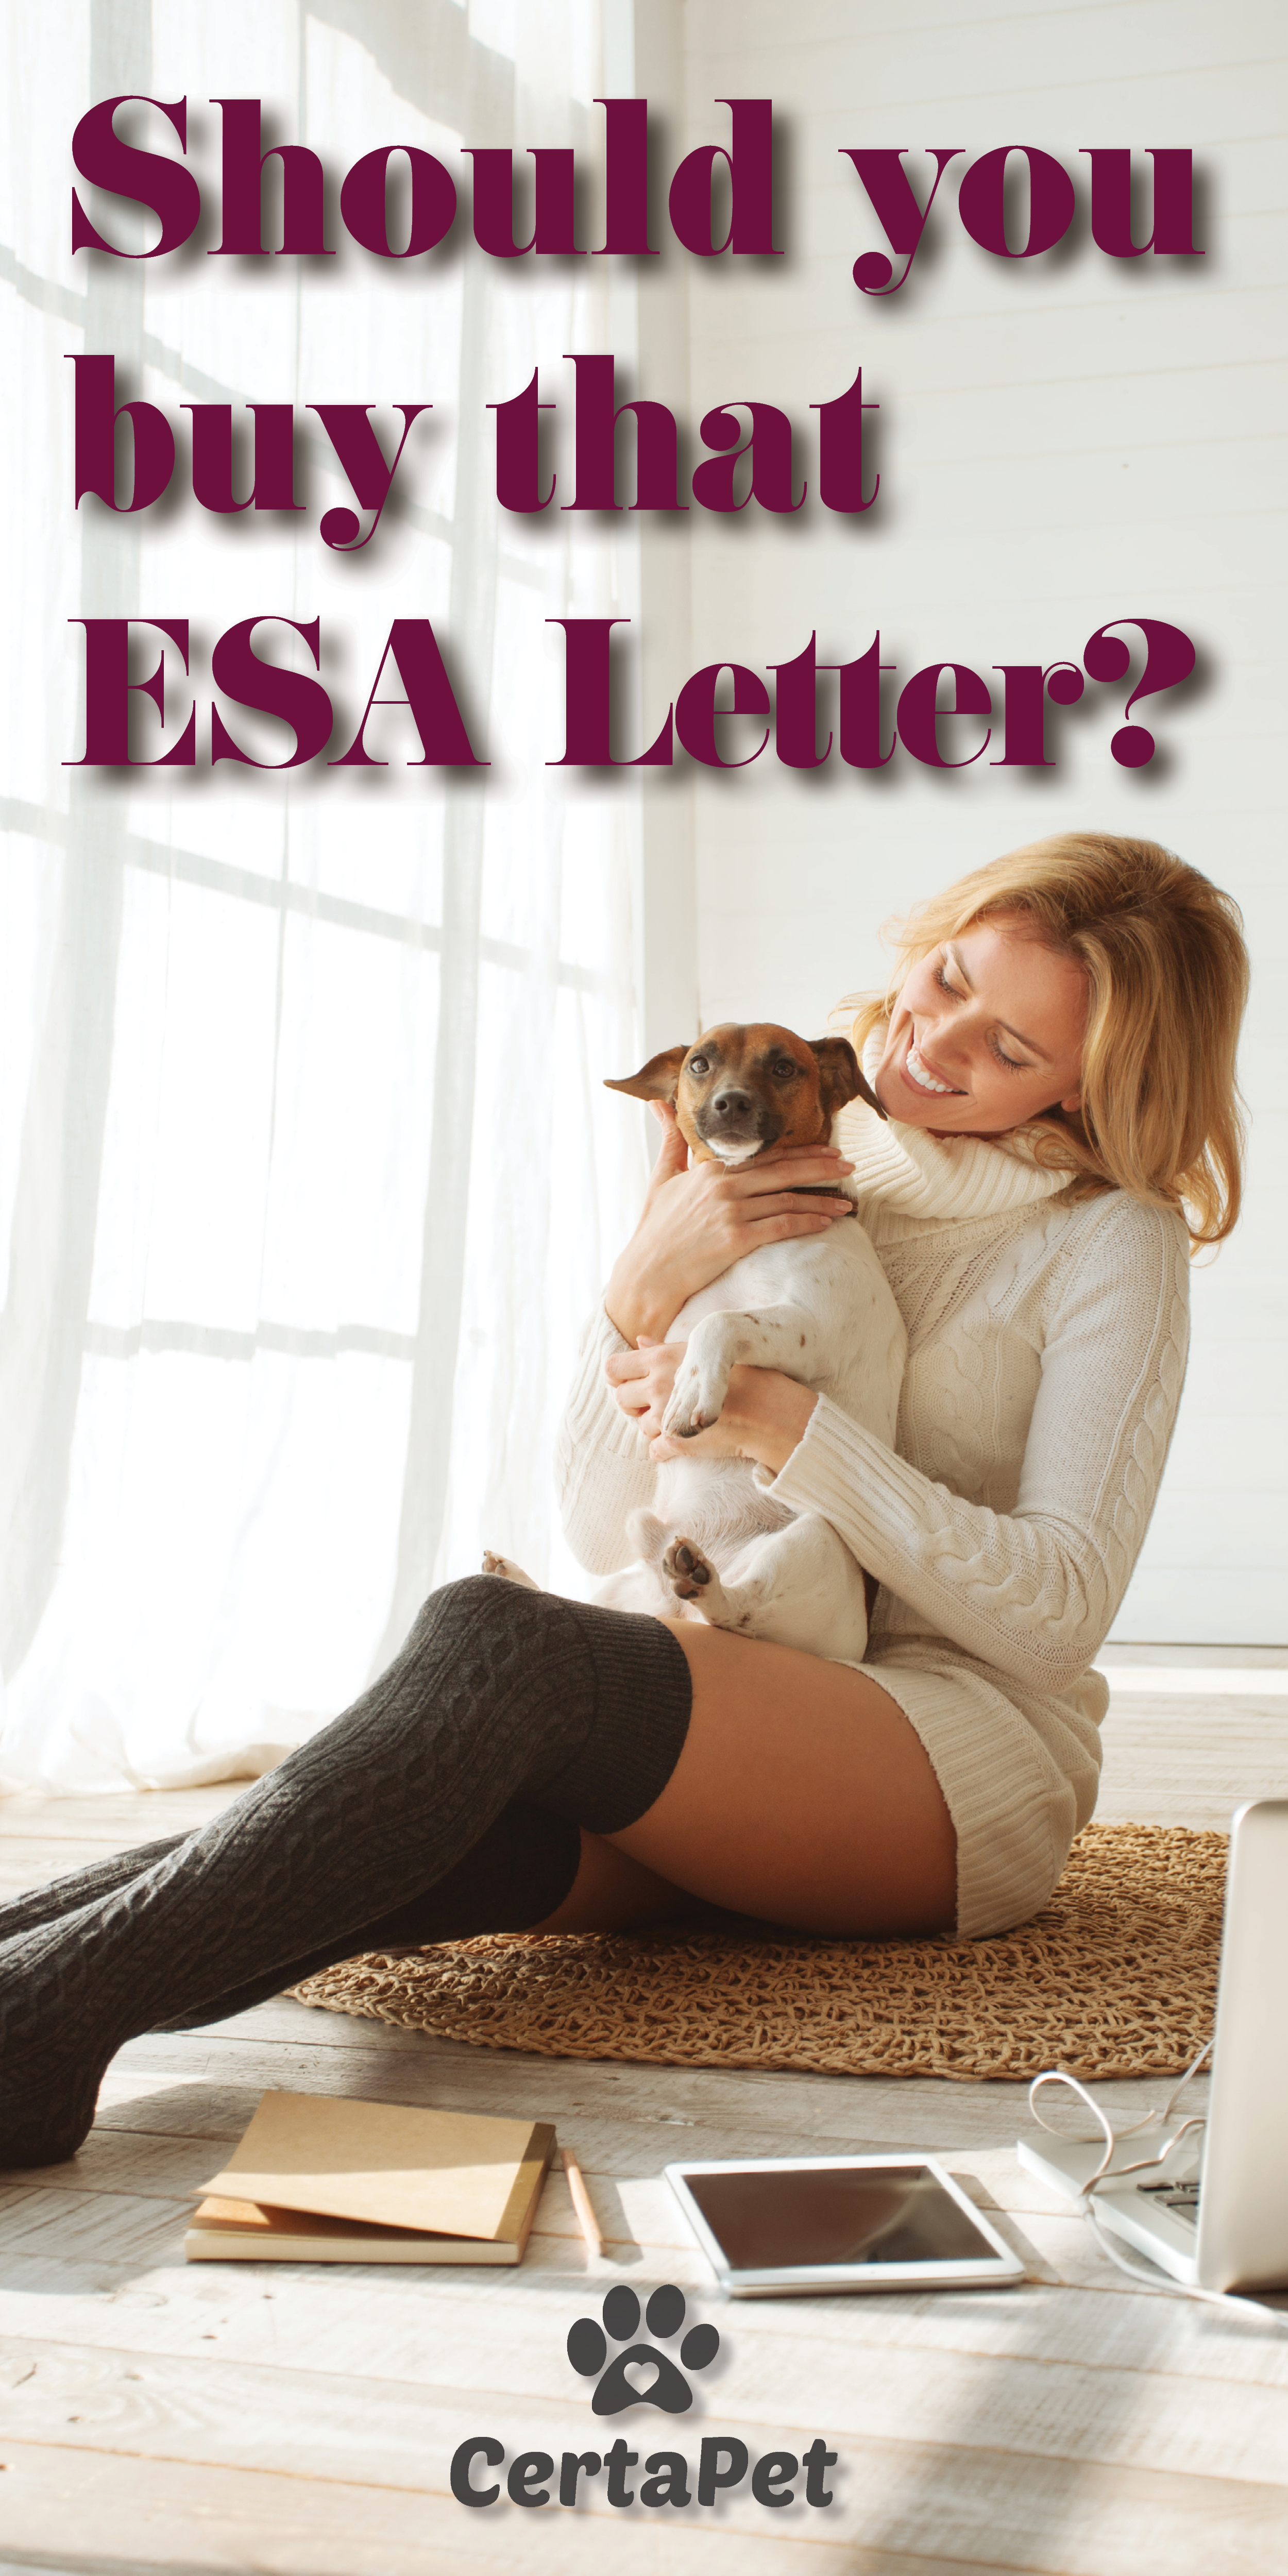 Still unsure about that ESA Letter? Here are 4 reasons why